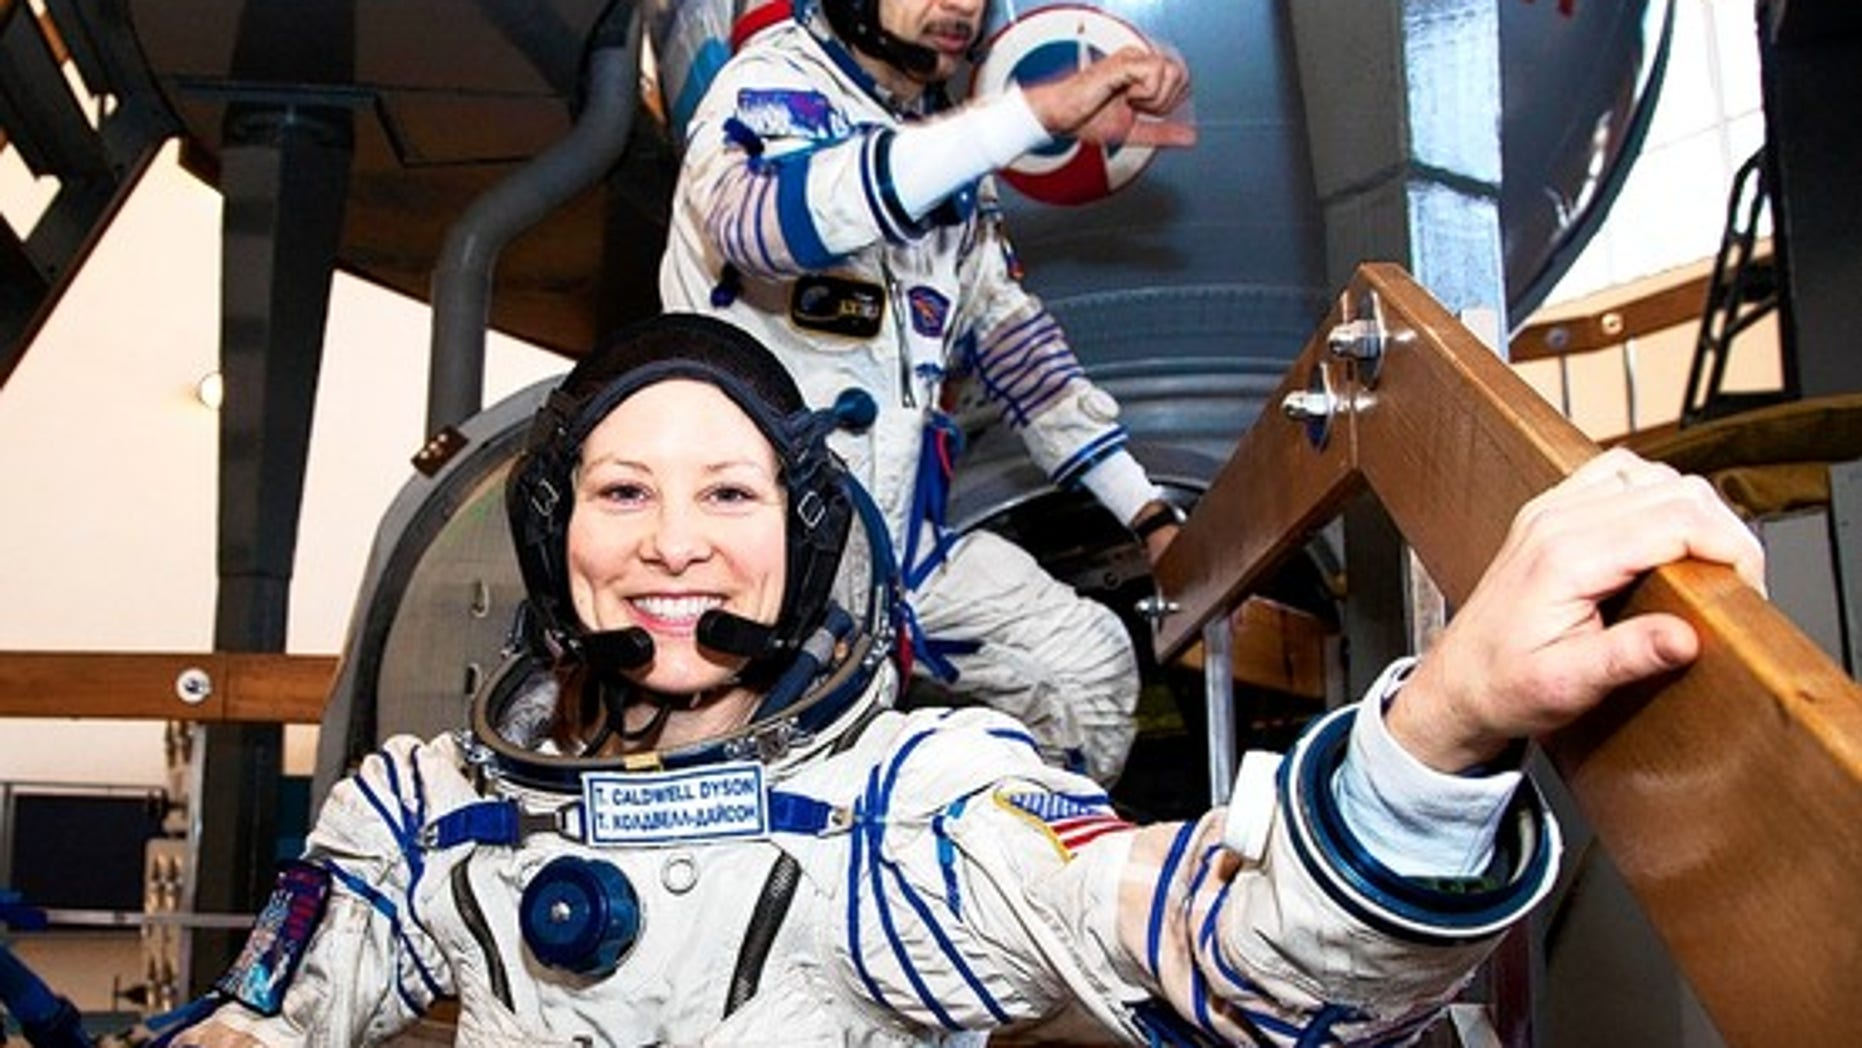 U.S. astronaut Tracy Caldwell Dyson and Russia's Mikhail Kornienko in March at a space center near Moscow.